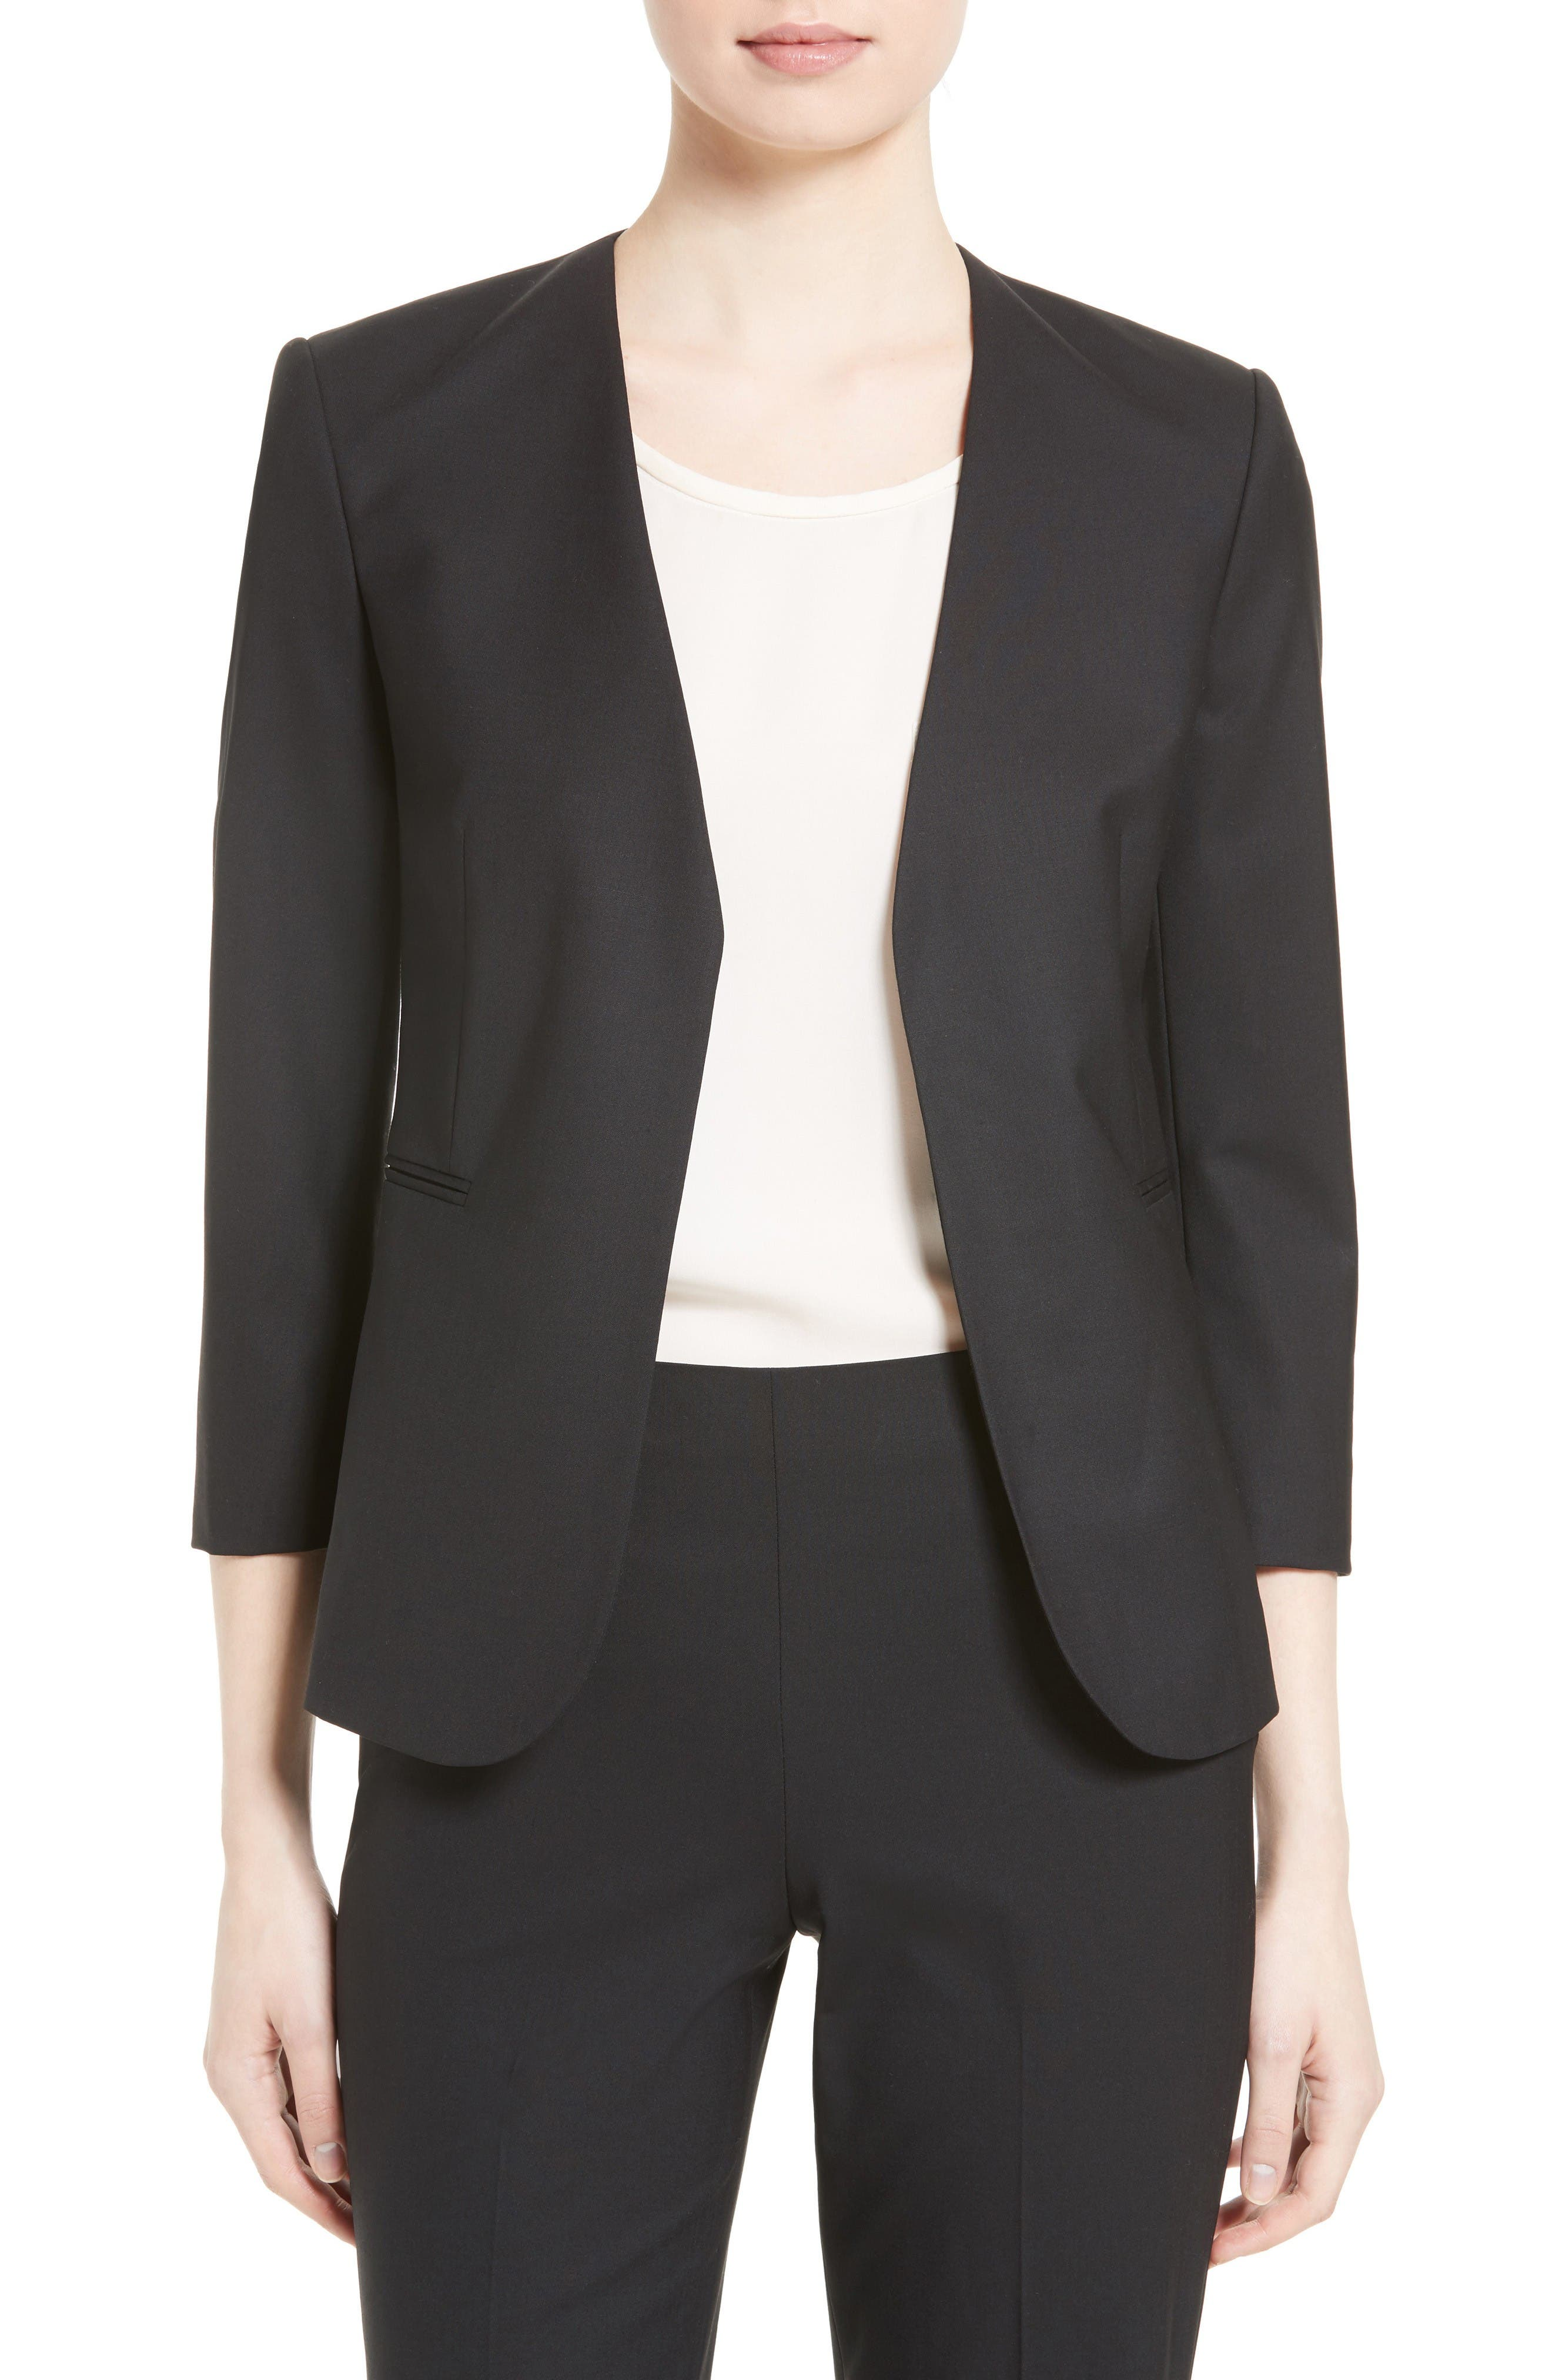 Alternate Image 1 Selected - Theory Lindrayia B Good Wool Suit Jacket (Nordstrom Exclusive)